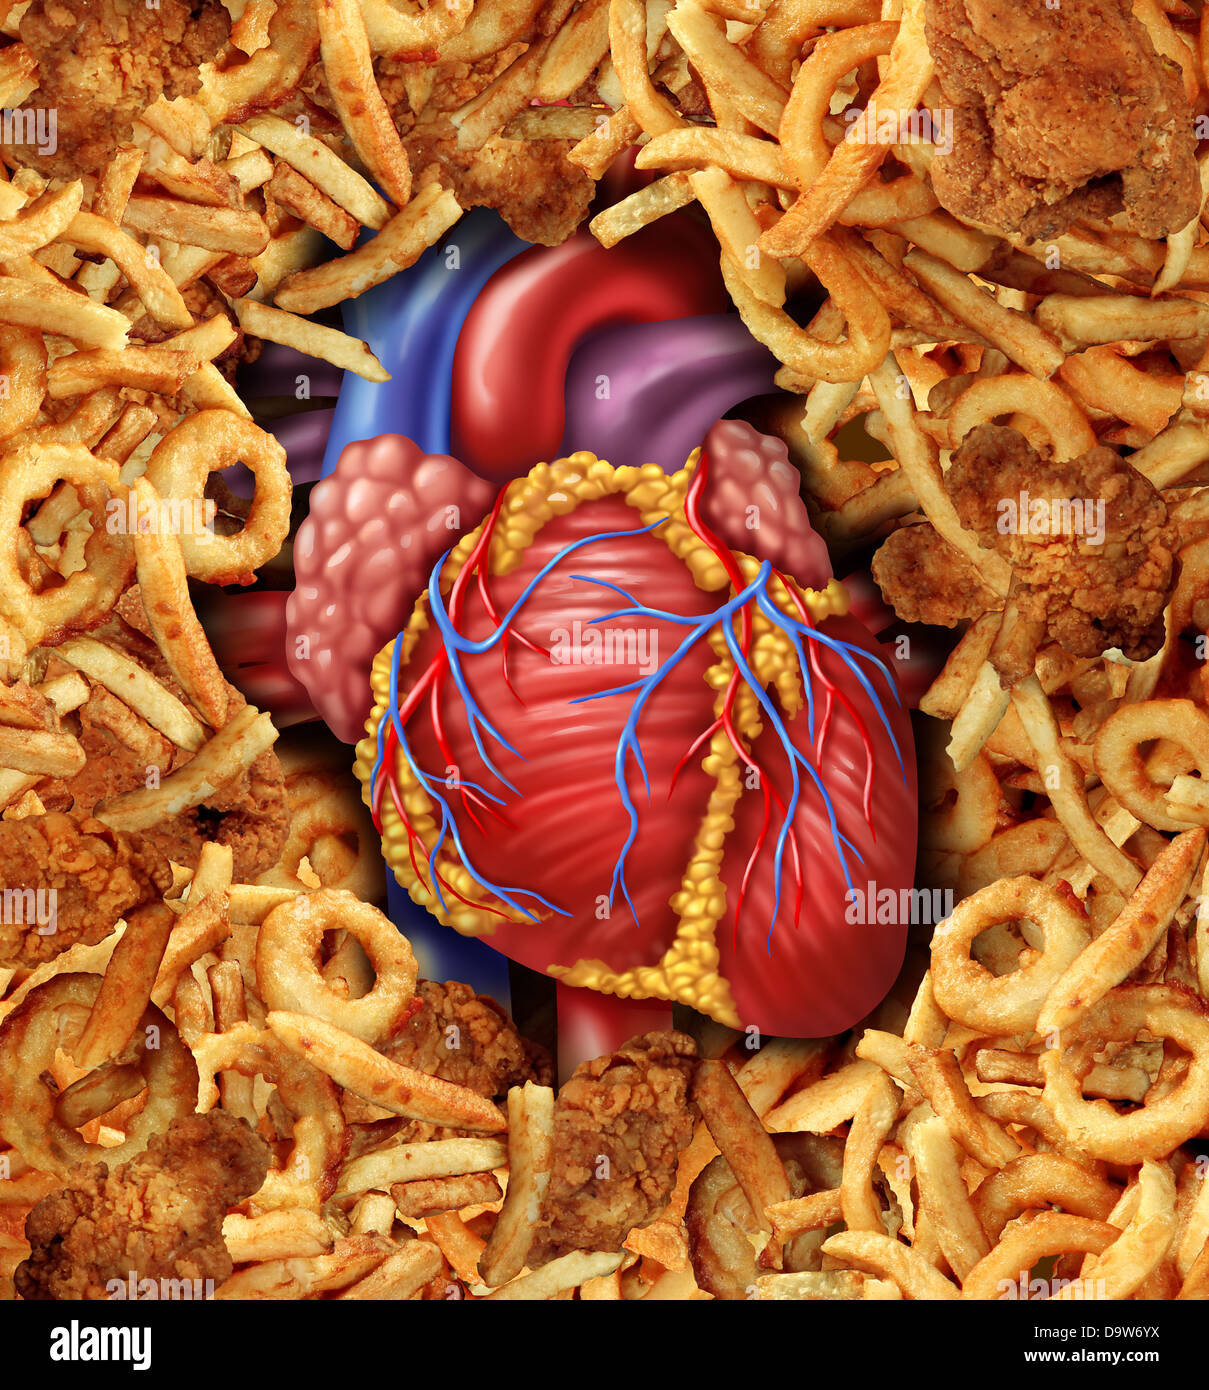 Heart disease food medical health care concept with a human heart heart disease food medical health care concept with a human heart organ surrounded by groups of greasy cholesterol rich fried foods as a symbol of arteries biocorpaavc